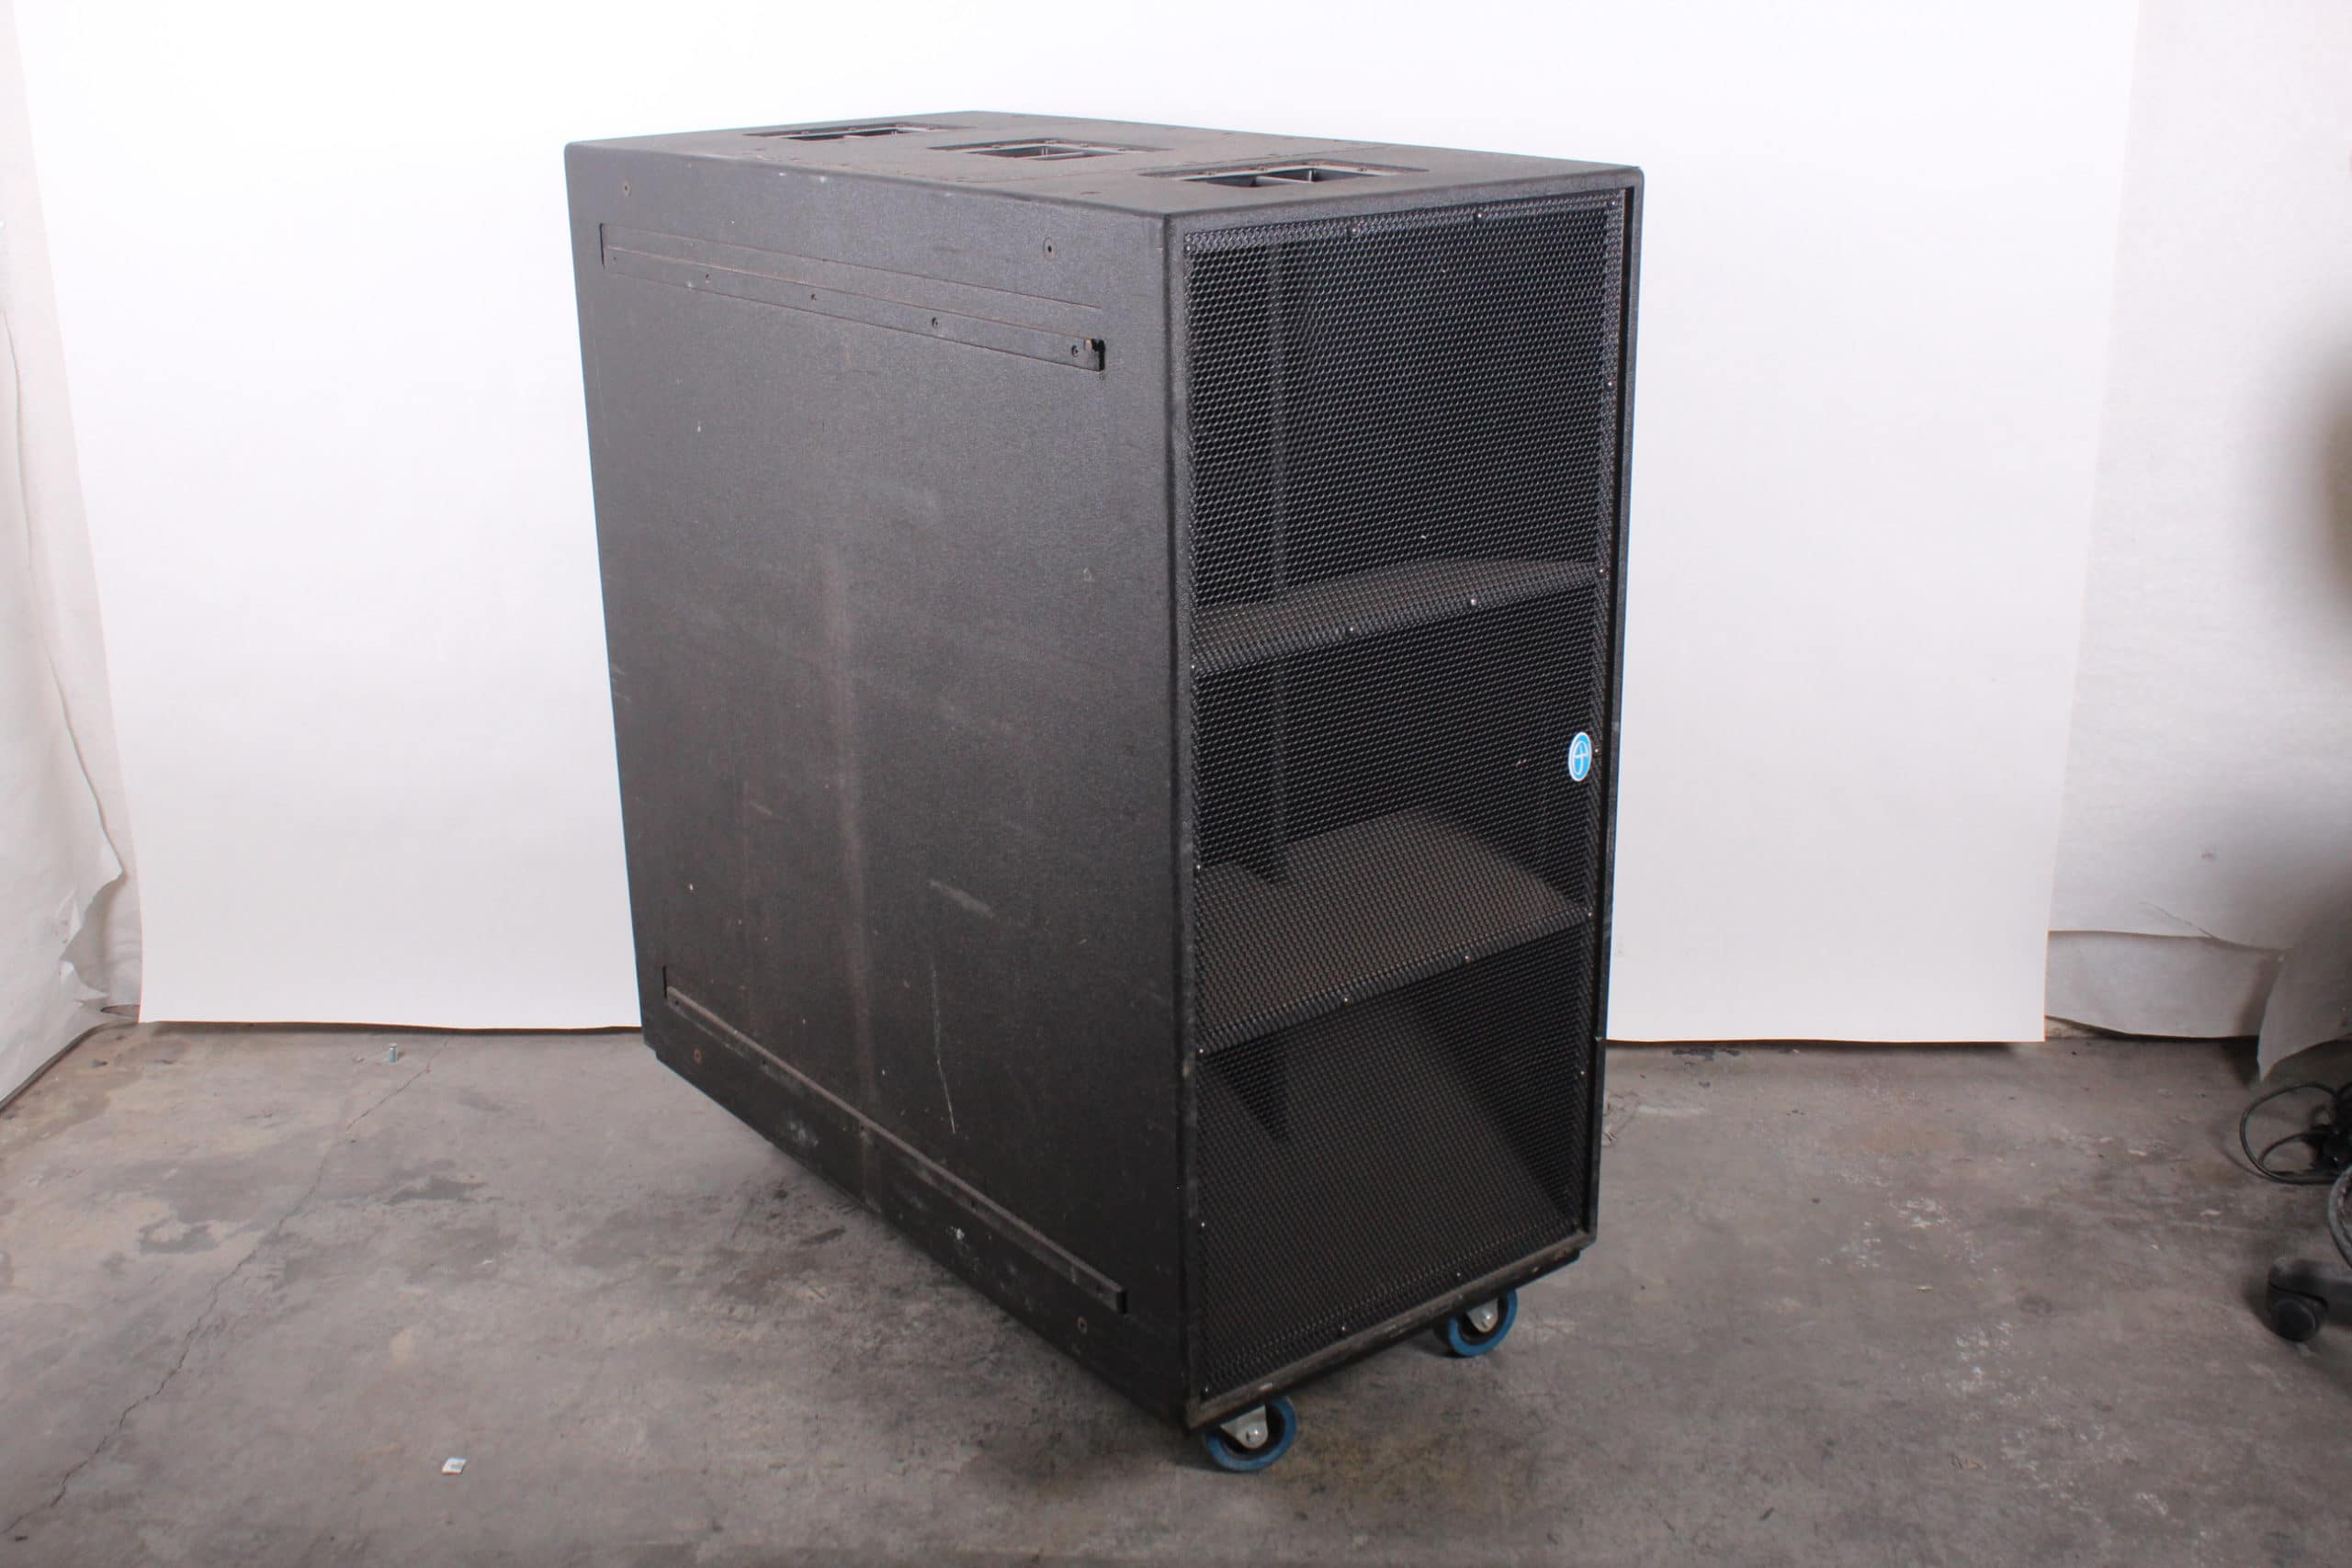 danley-sound-labs-dbh218-the-thumper-dual-18-bass-horn-commercial-pro-subwoofer-w-caster-wheels MAIN